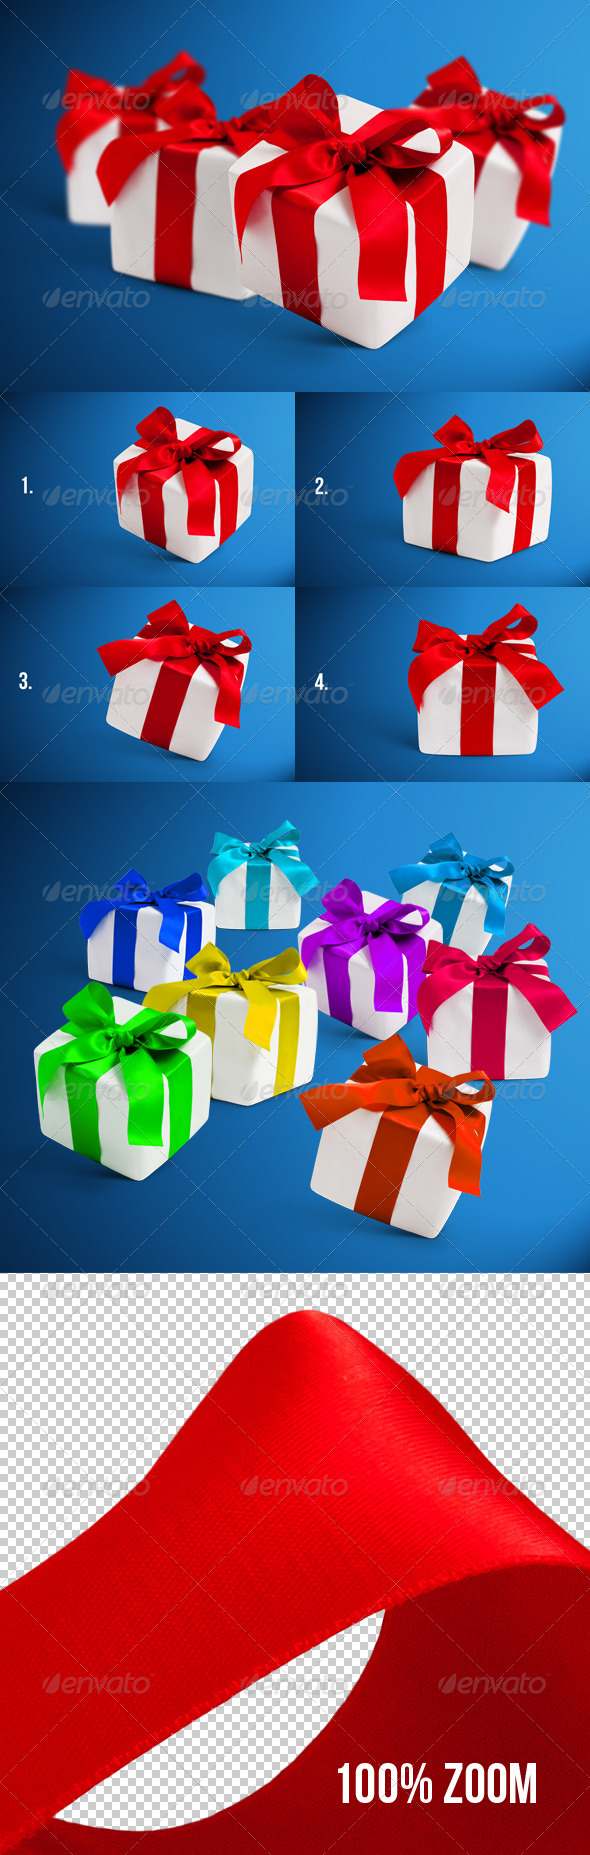 4 Gift Boxes with Shadows Photorealistic